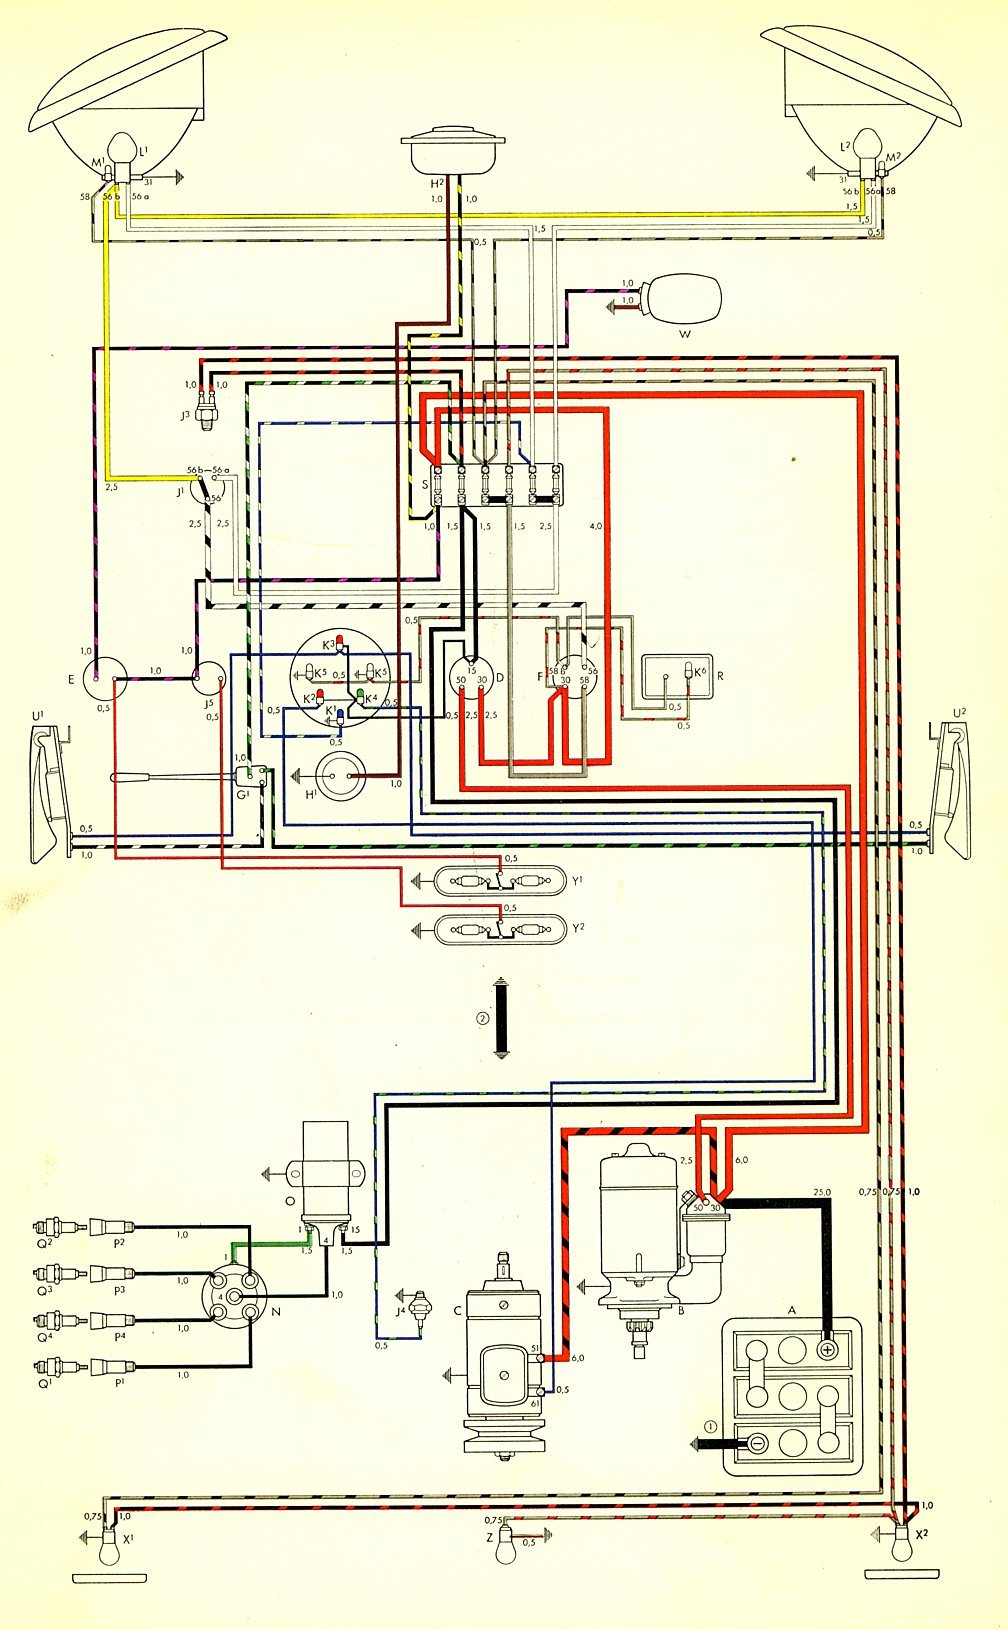 bus_59 wiring diagram for 1971 vw bus readingrat net 1978 vw bus fuse box diagram at mifinder.co